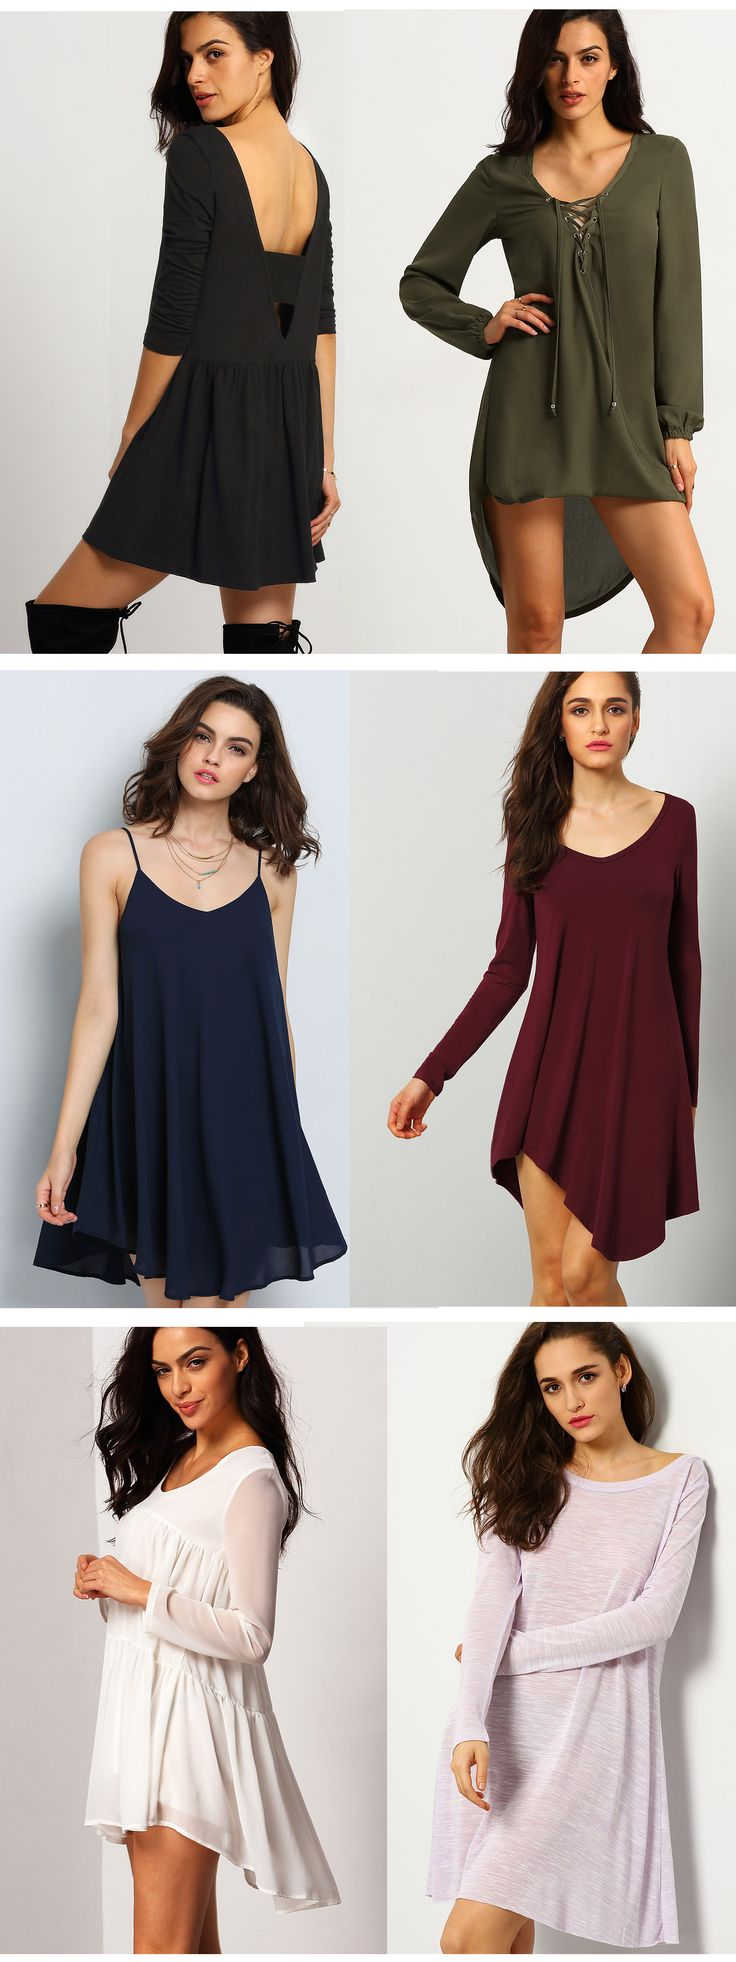 Black dress goals - Find The Perfect Tshirt Dress At Romwe Com With Daily Update Romwe